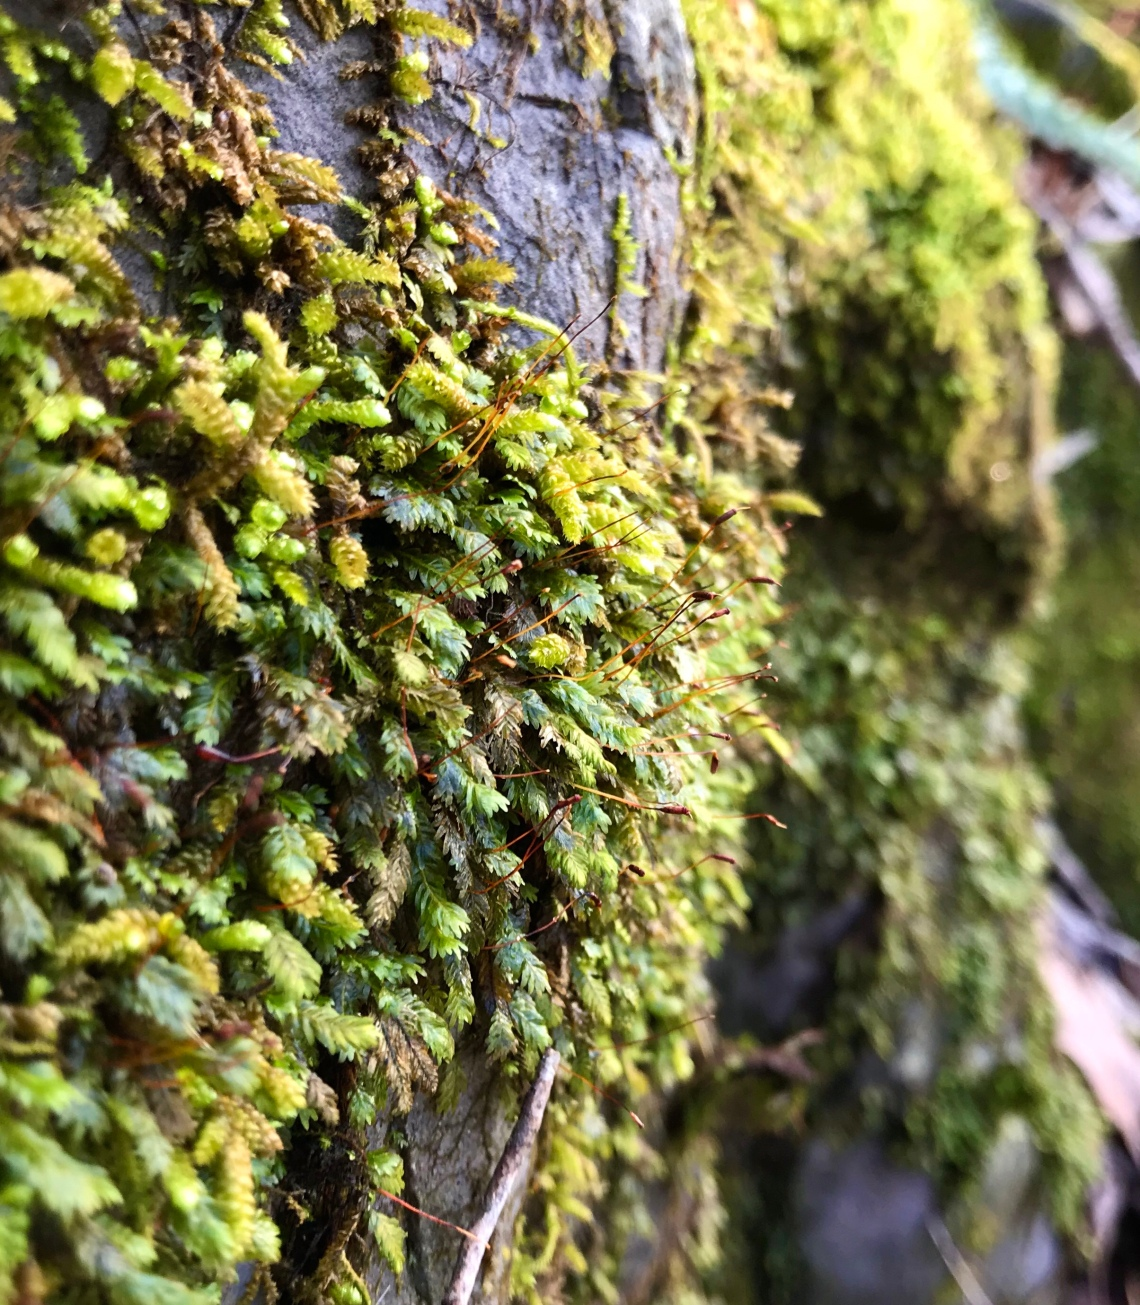 Fruiting mosses growing on a large limestone outcrop in an Appalachian forest